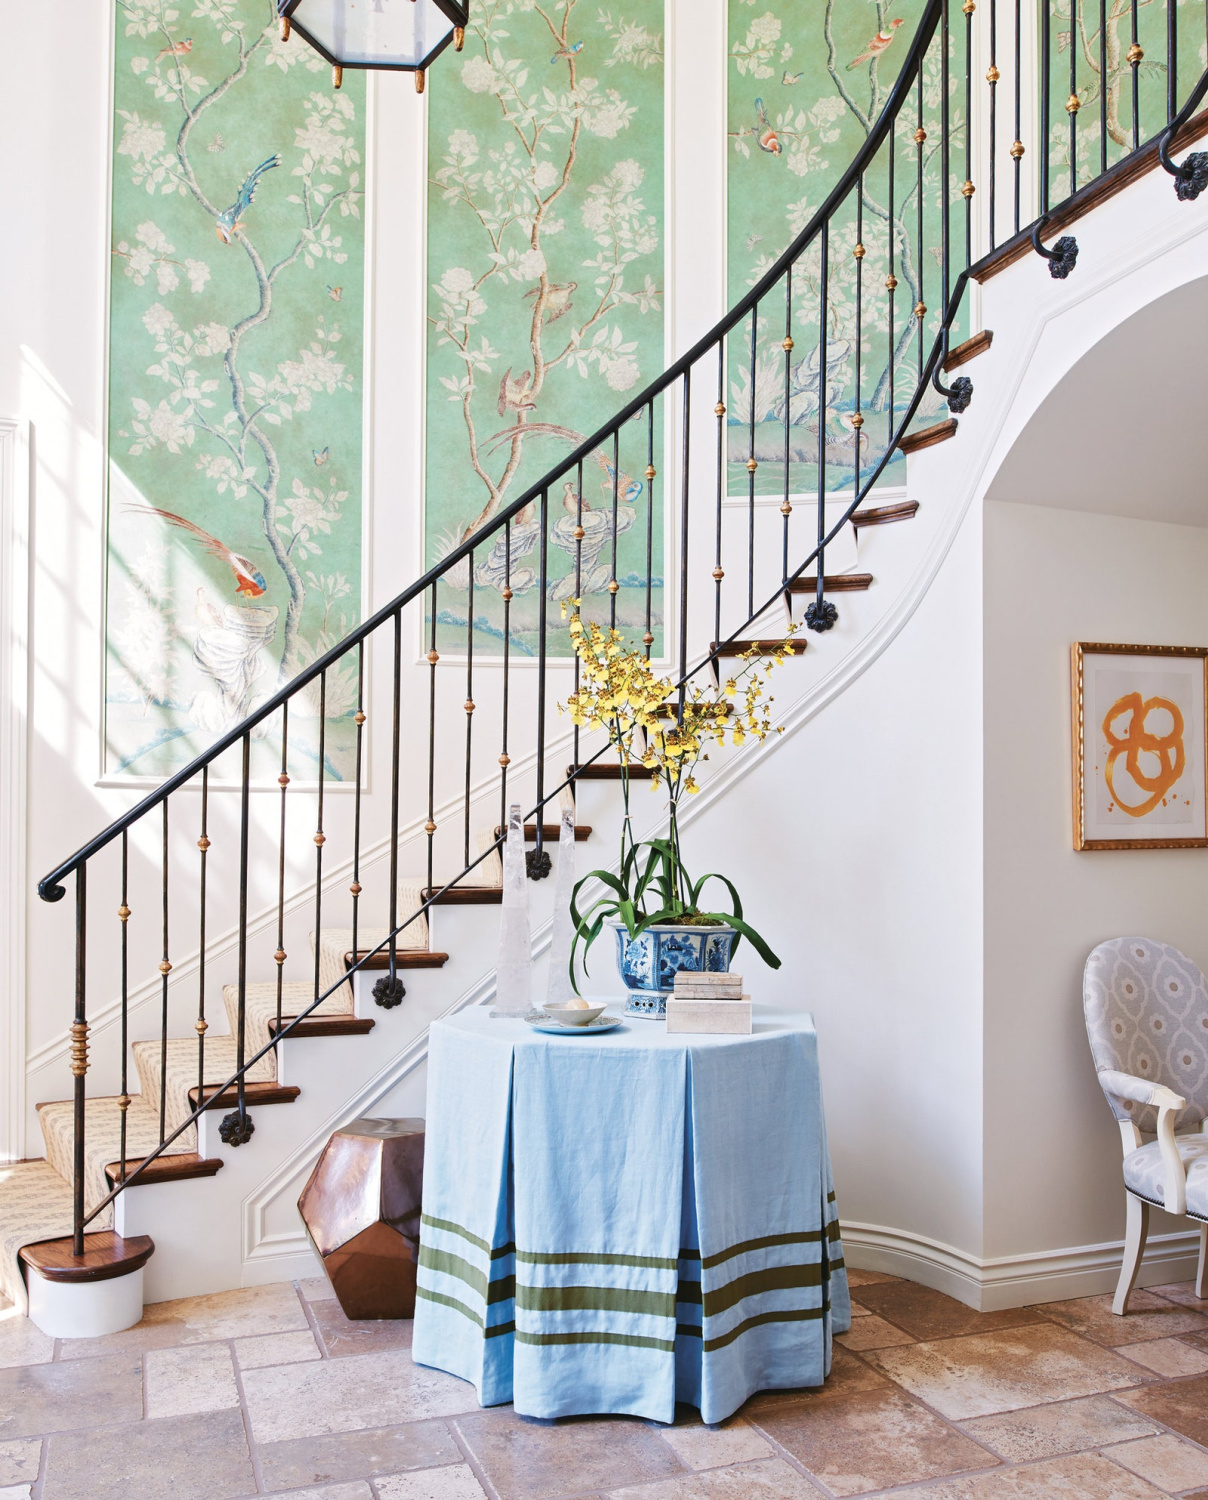 Mark Sikes designed entry with wrought iron staircase and skirted round table. #traditionalstyle #entry #interiordesign